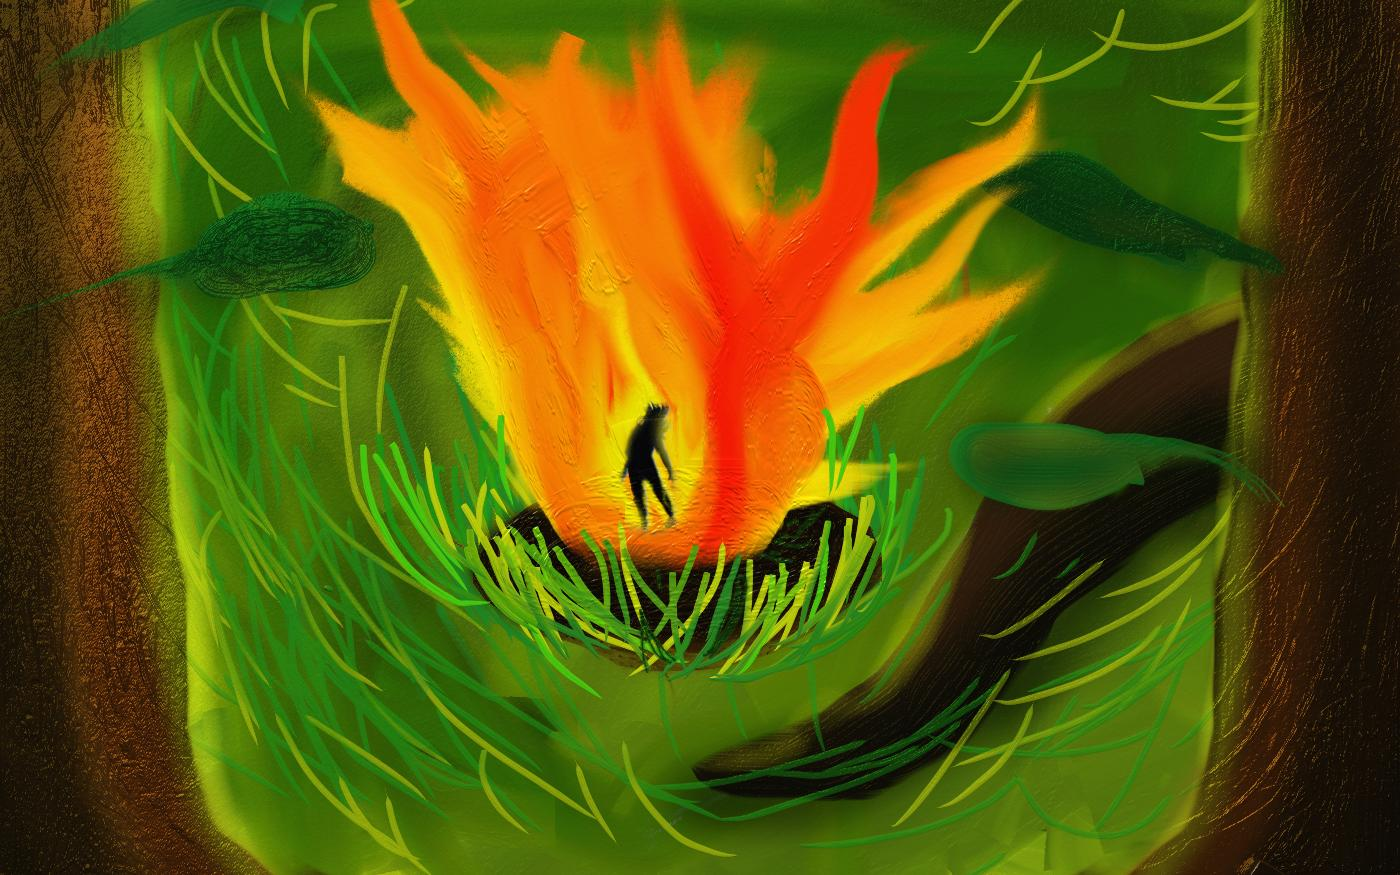 Man on fire in a forest